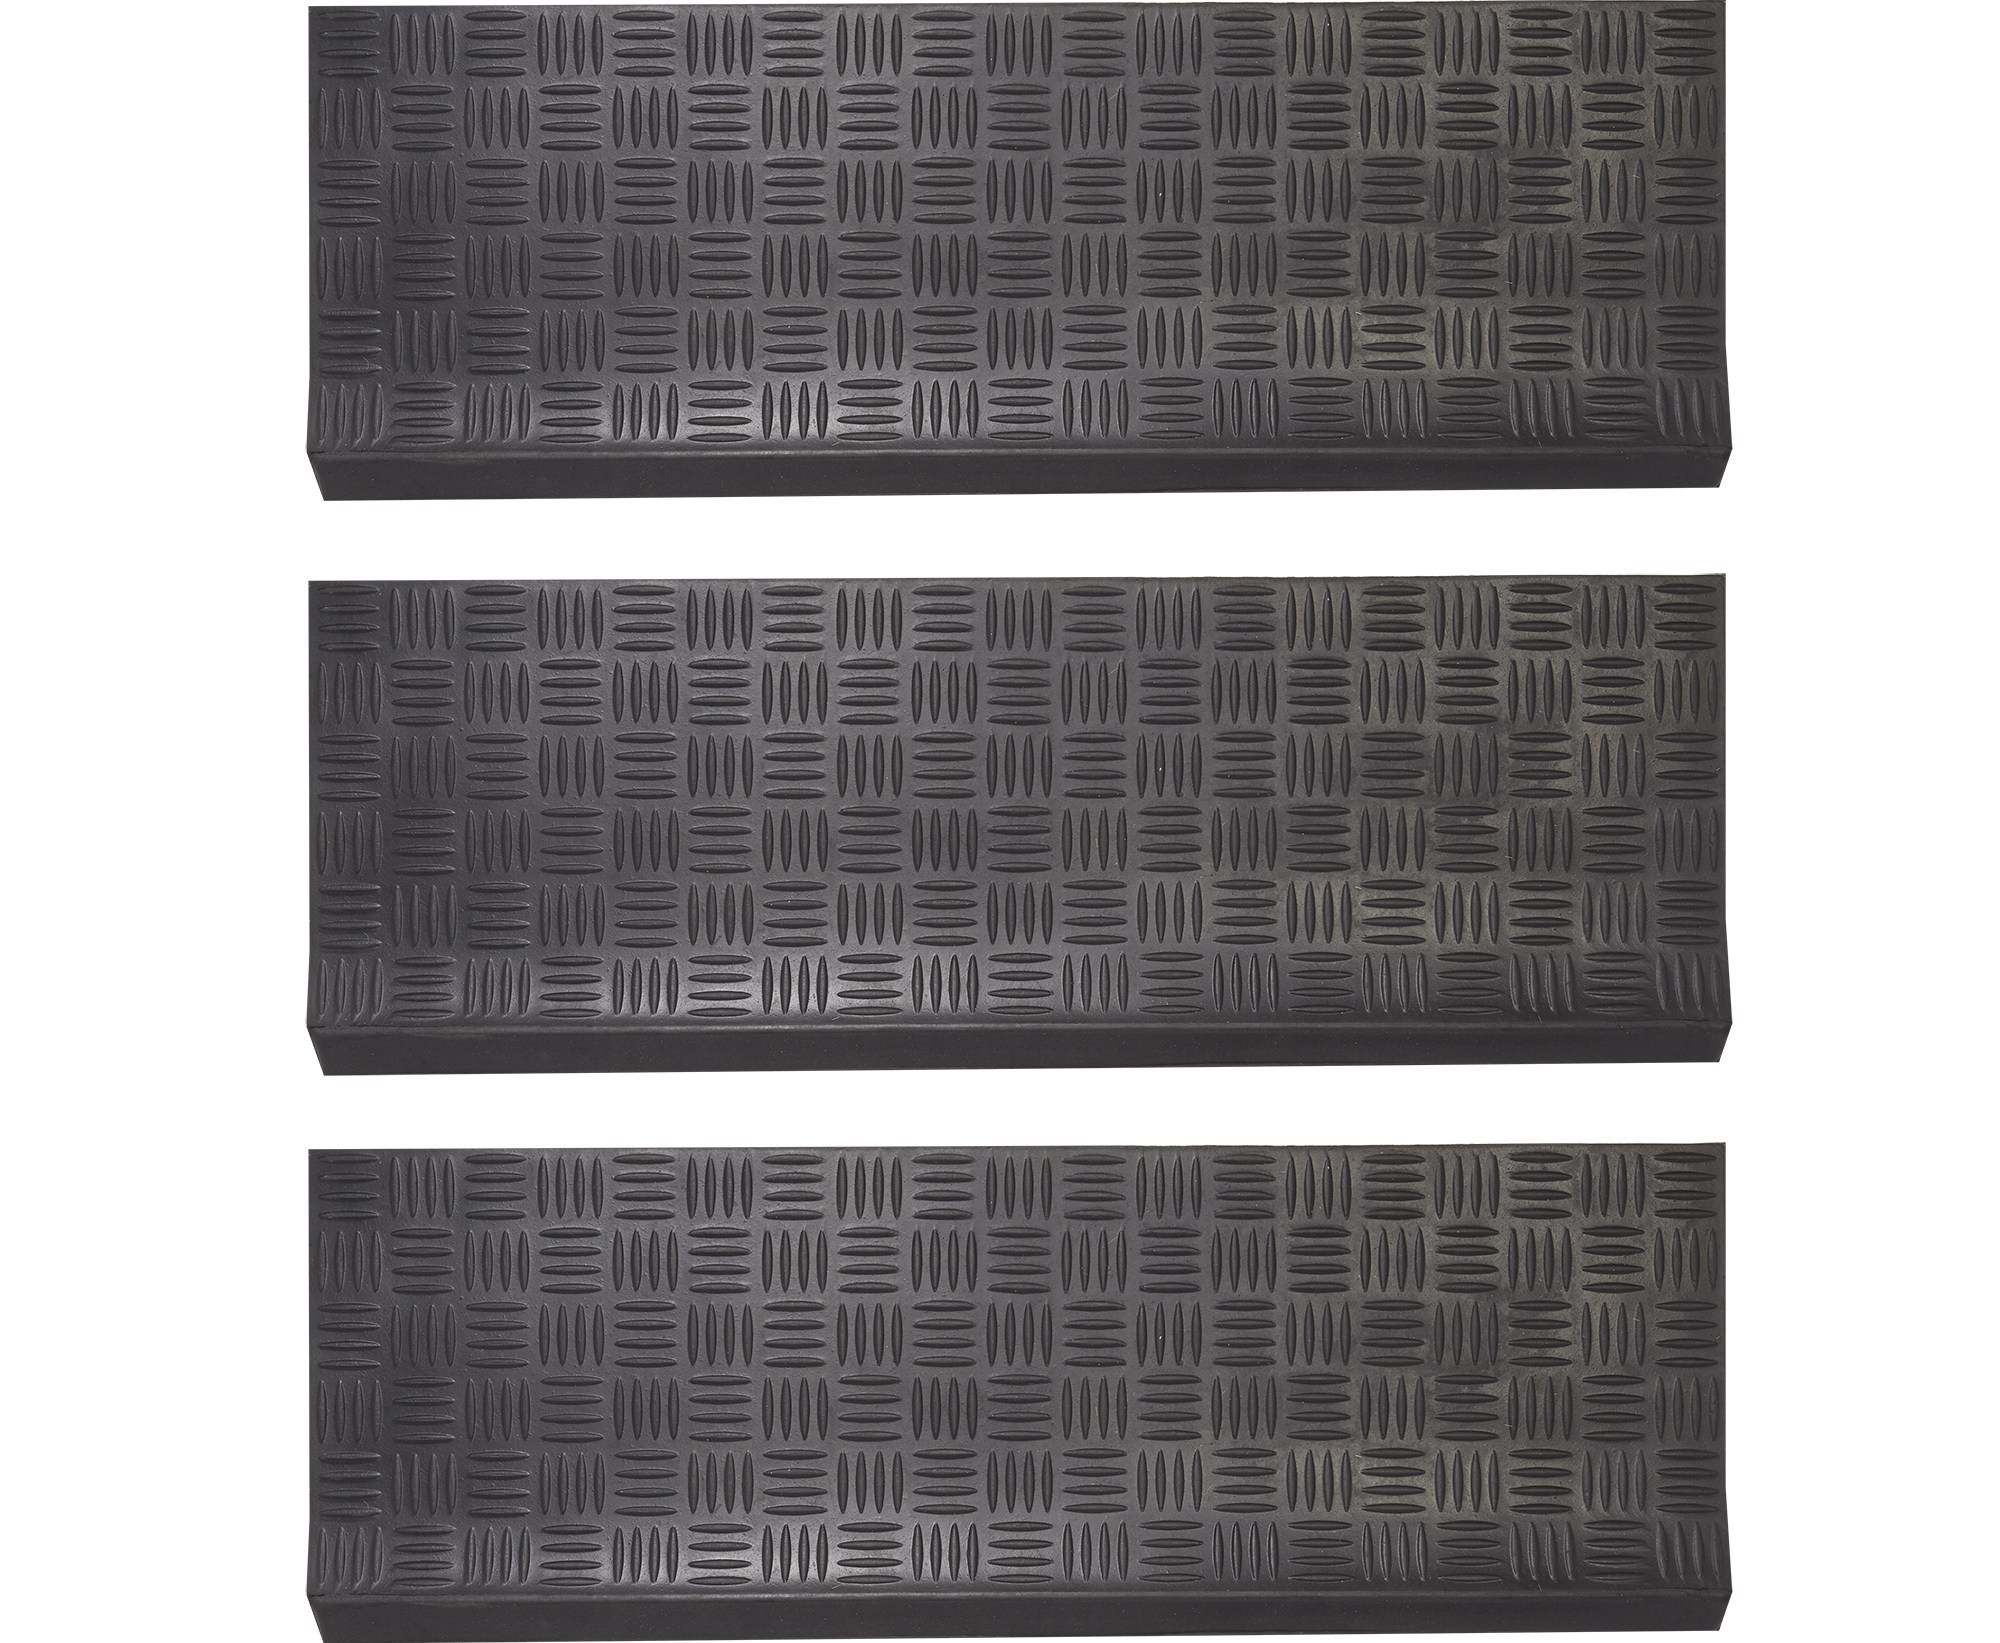 Envelor Home And Garden Indoor Outdoor Stair Treads Non Slip   Walmart Outdoor Stair Treads   Rubber Stair   Rubber Backed   Walmart Com   Step Mats   Anti Slip